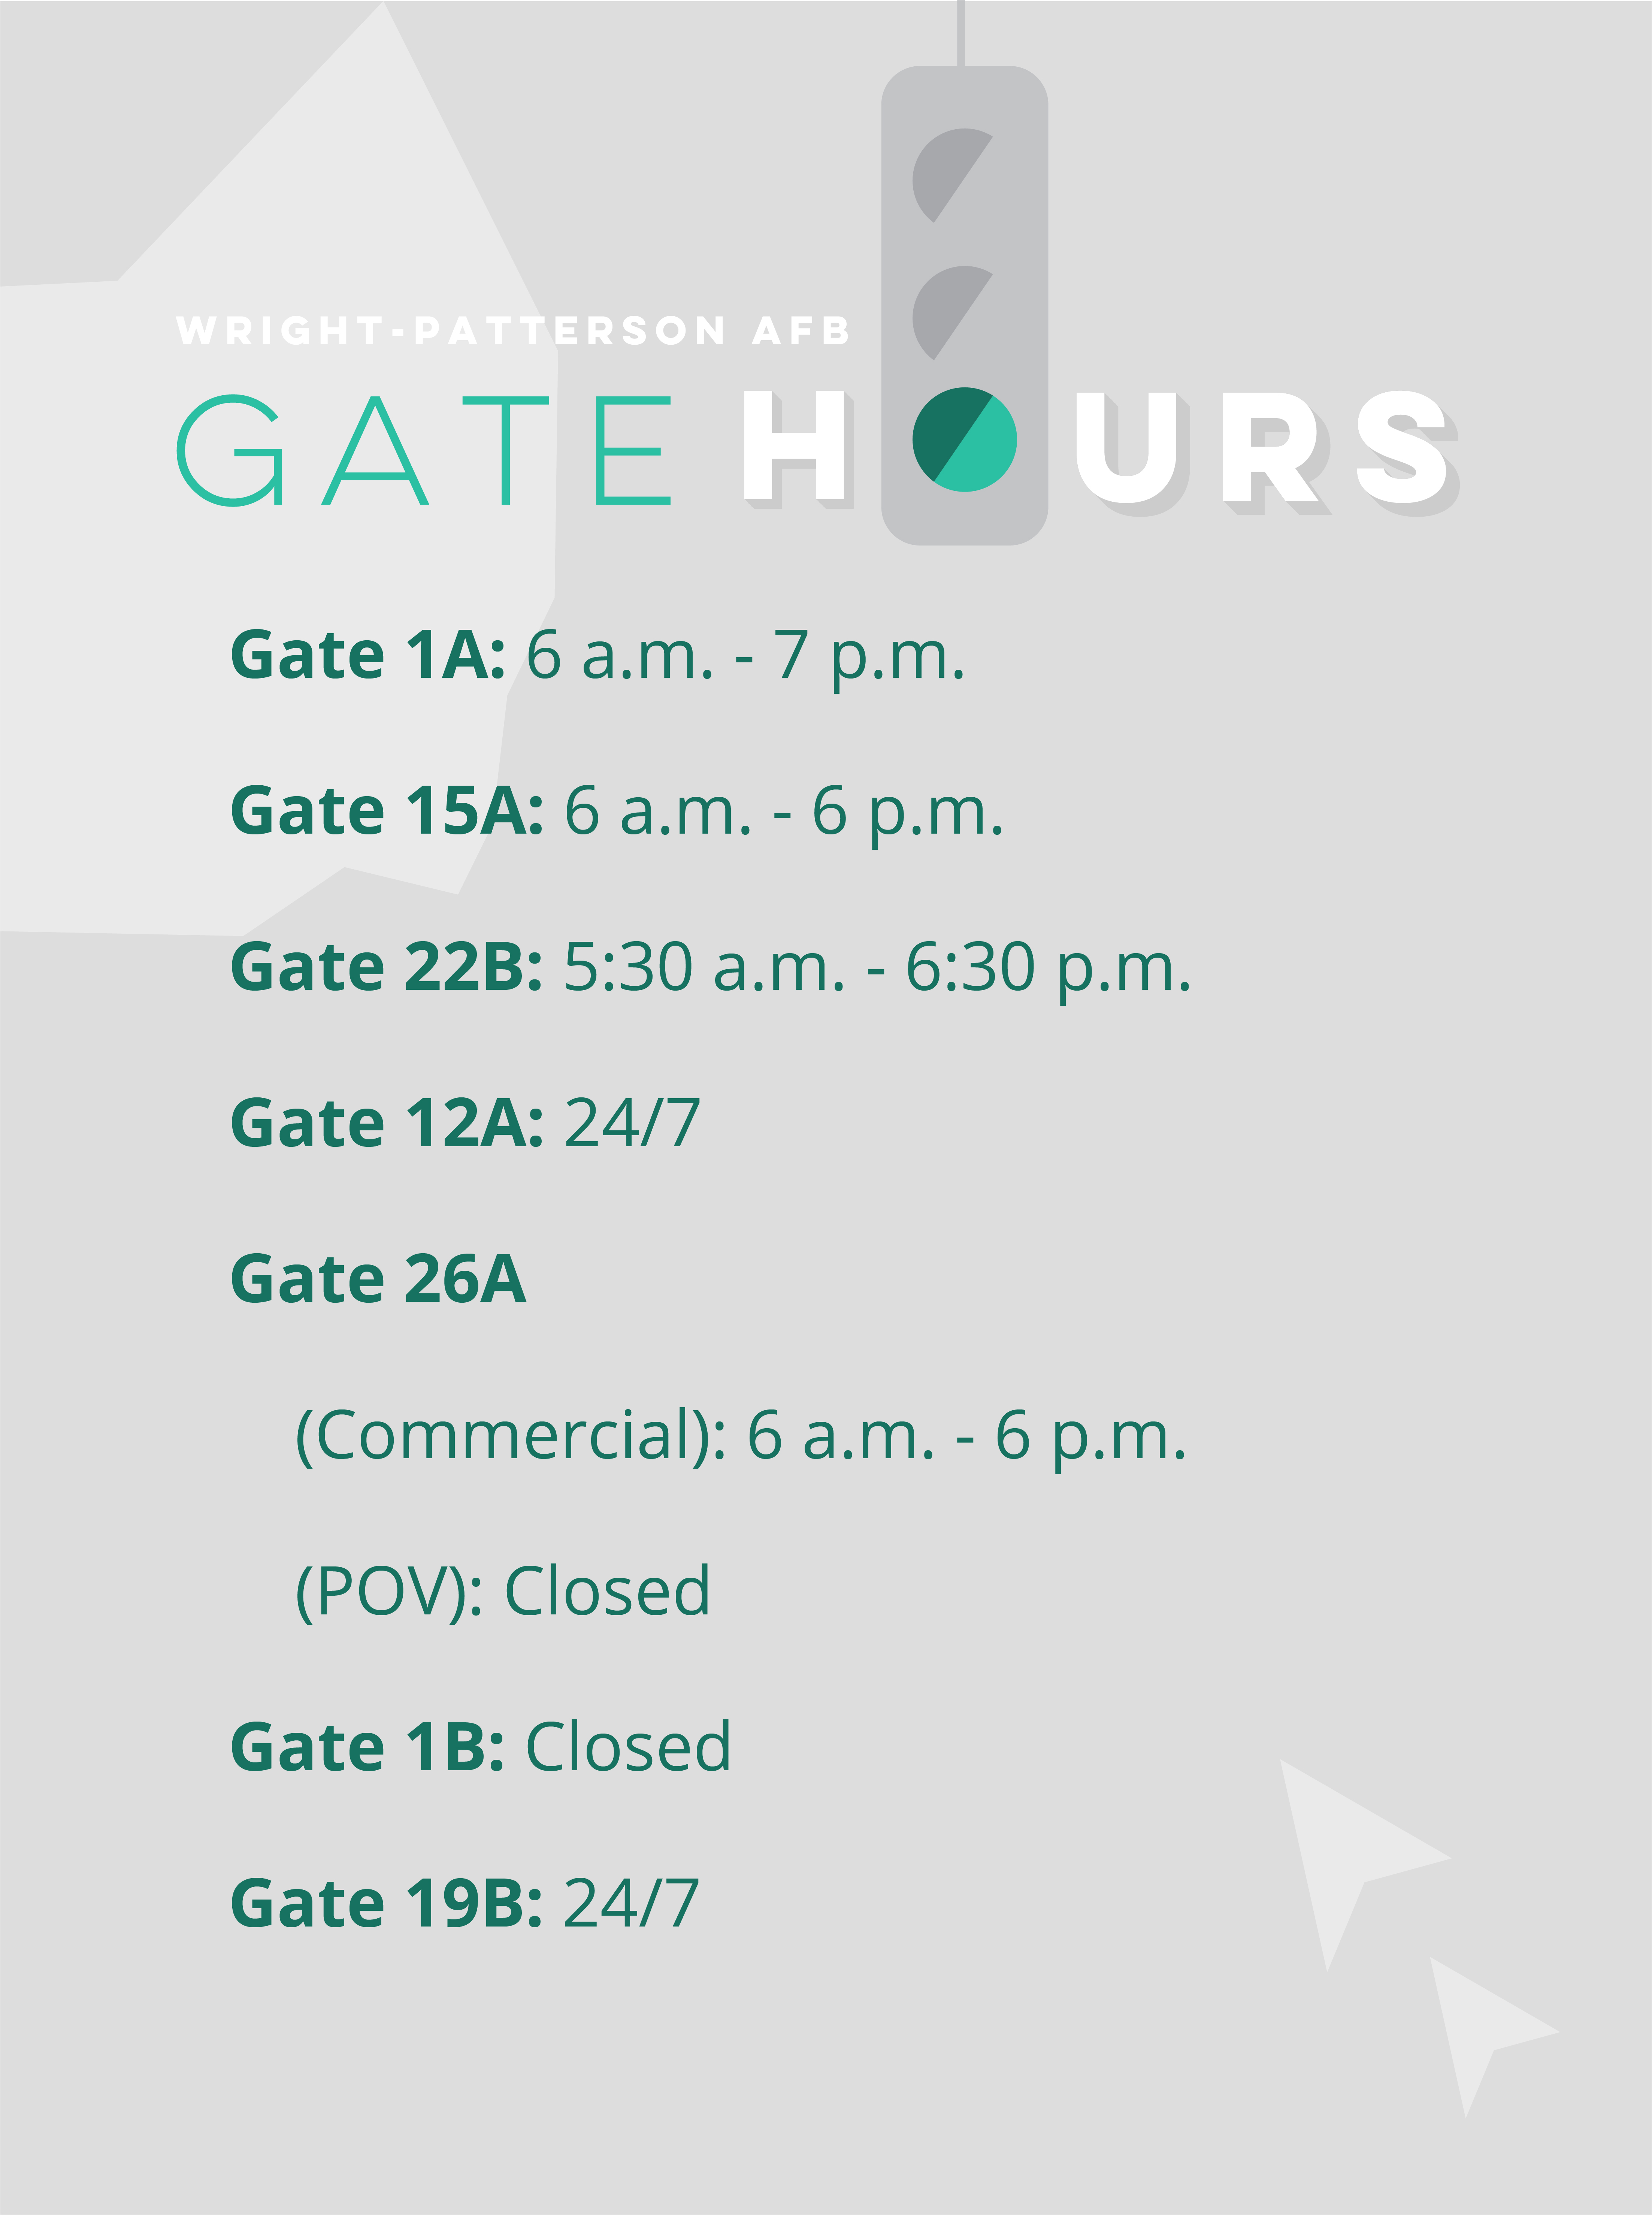 Gate operating hours graphic